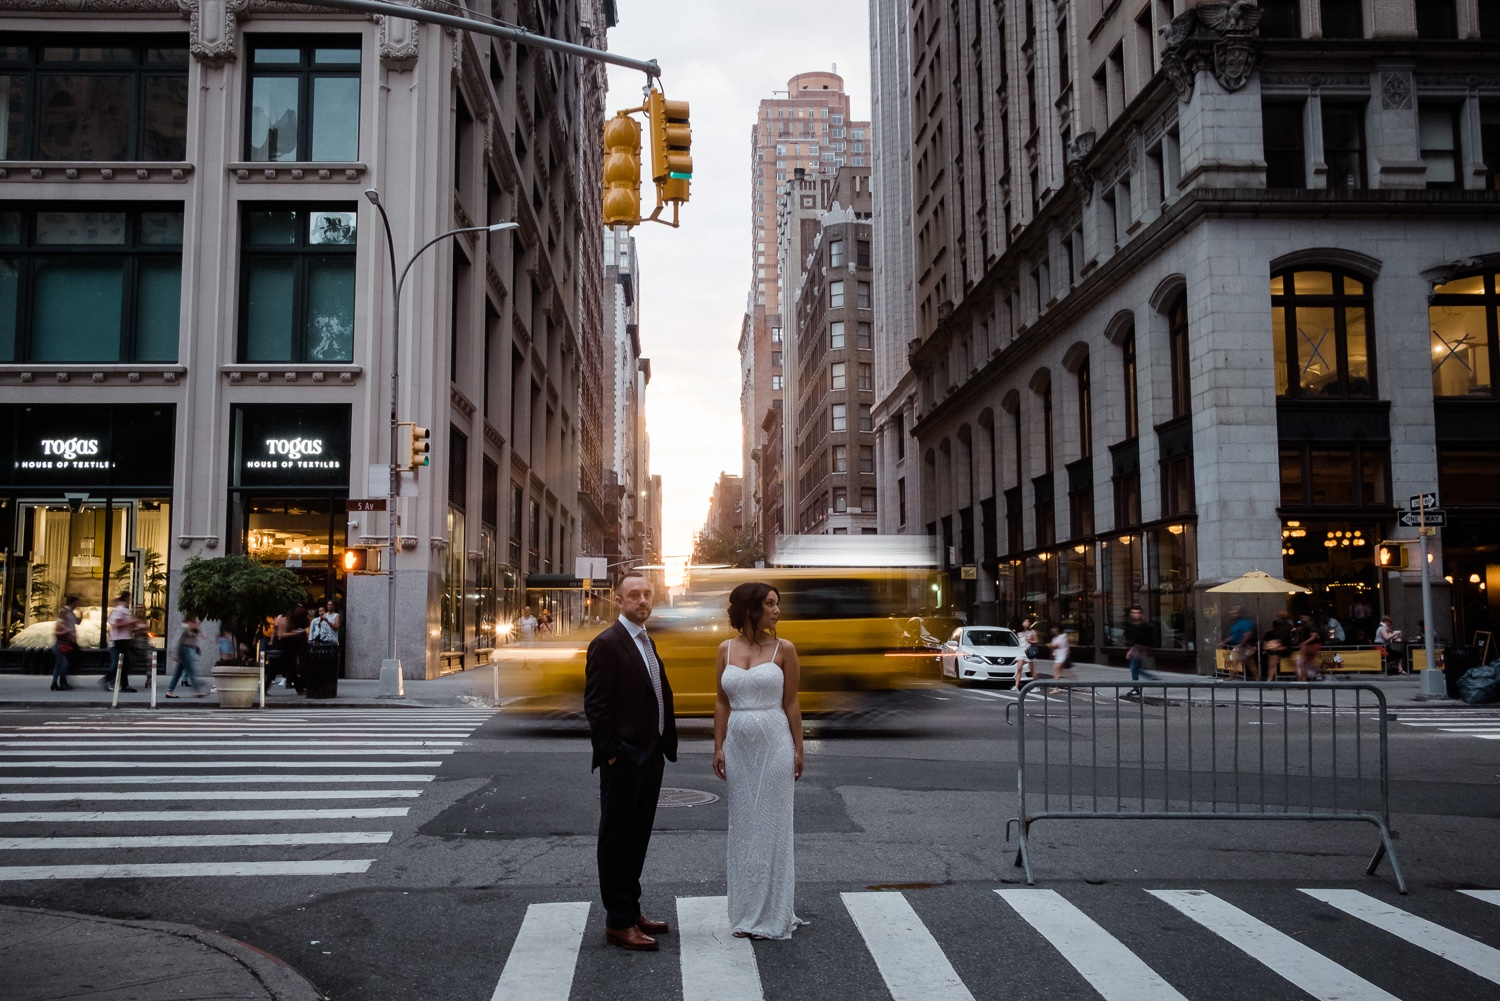 The Redbury Hotel, The Redbury Hotel Wedding, The Redbury Hotel Wedding Photos, Manhattan Wedding, Manhattan Wedding Photographer, Best NYC Wedding Photographer, New York City Wedding, Manhattan Wedding Portraits, NYC Wedding Portraits, Street Wedding Photography,